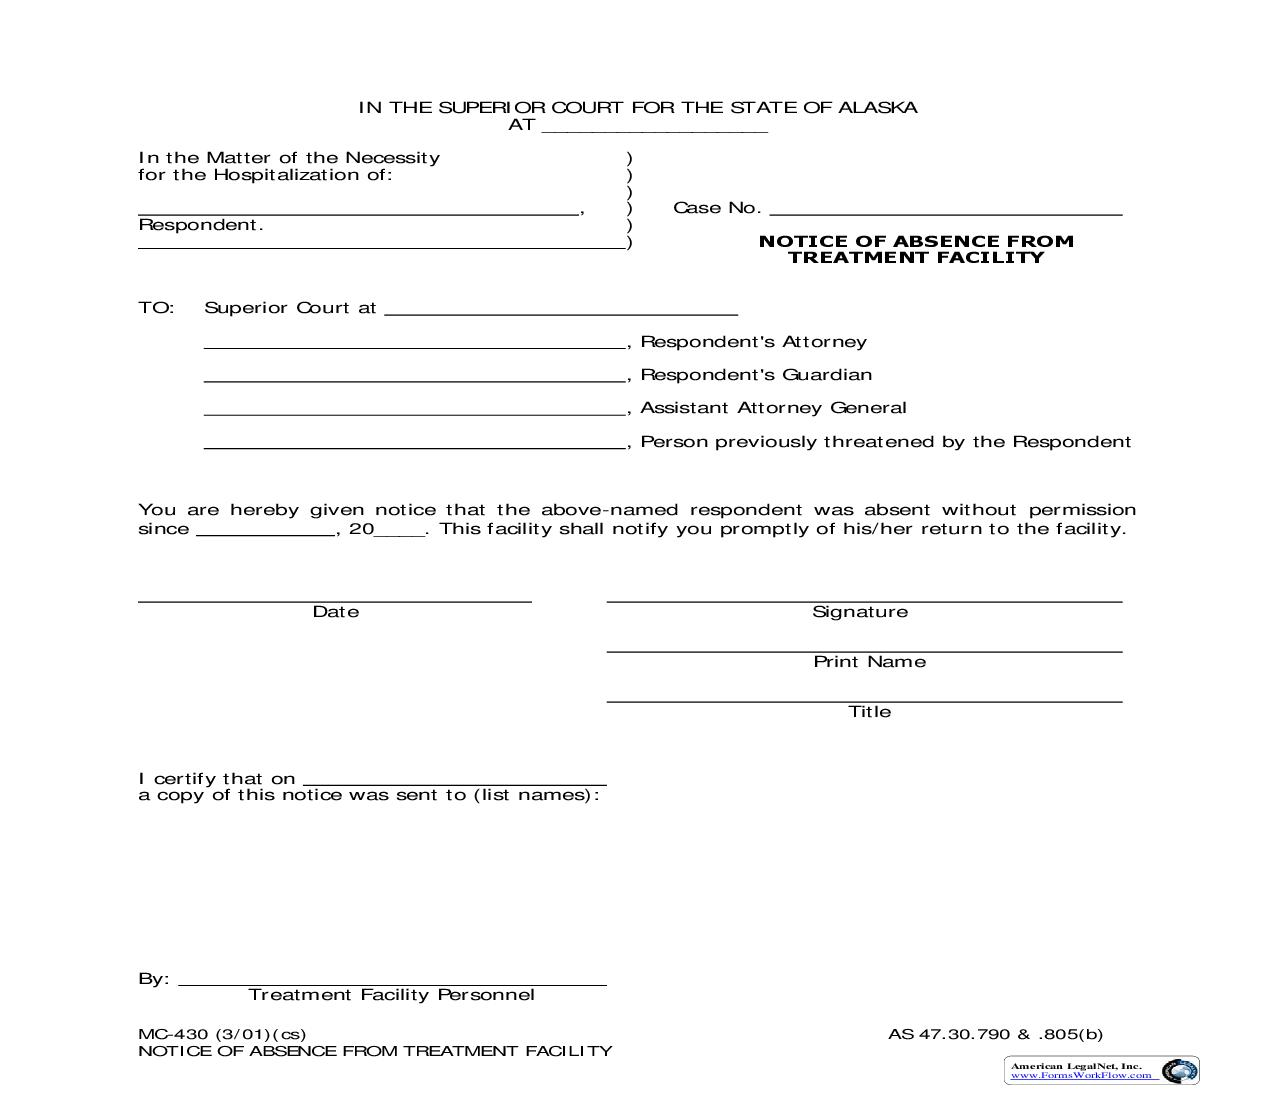 Notice Of Absence From Treatment Facility {MC-430} | Pdf Fpdf Doc Docx | Alaska